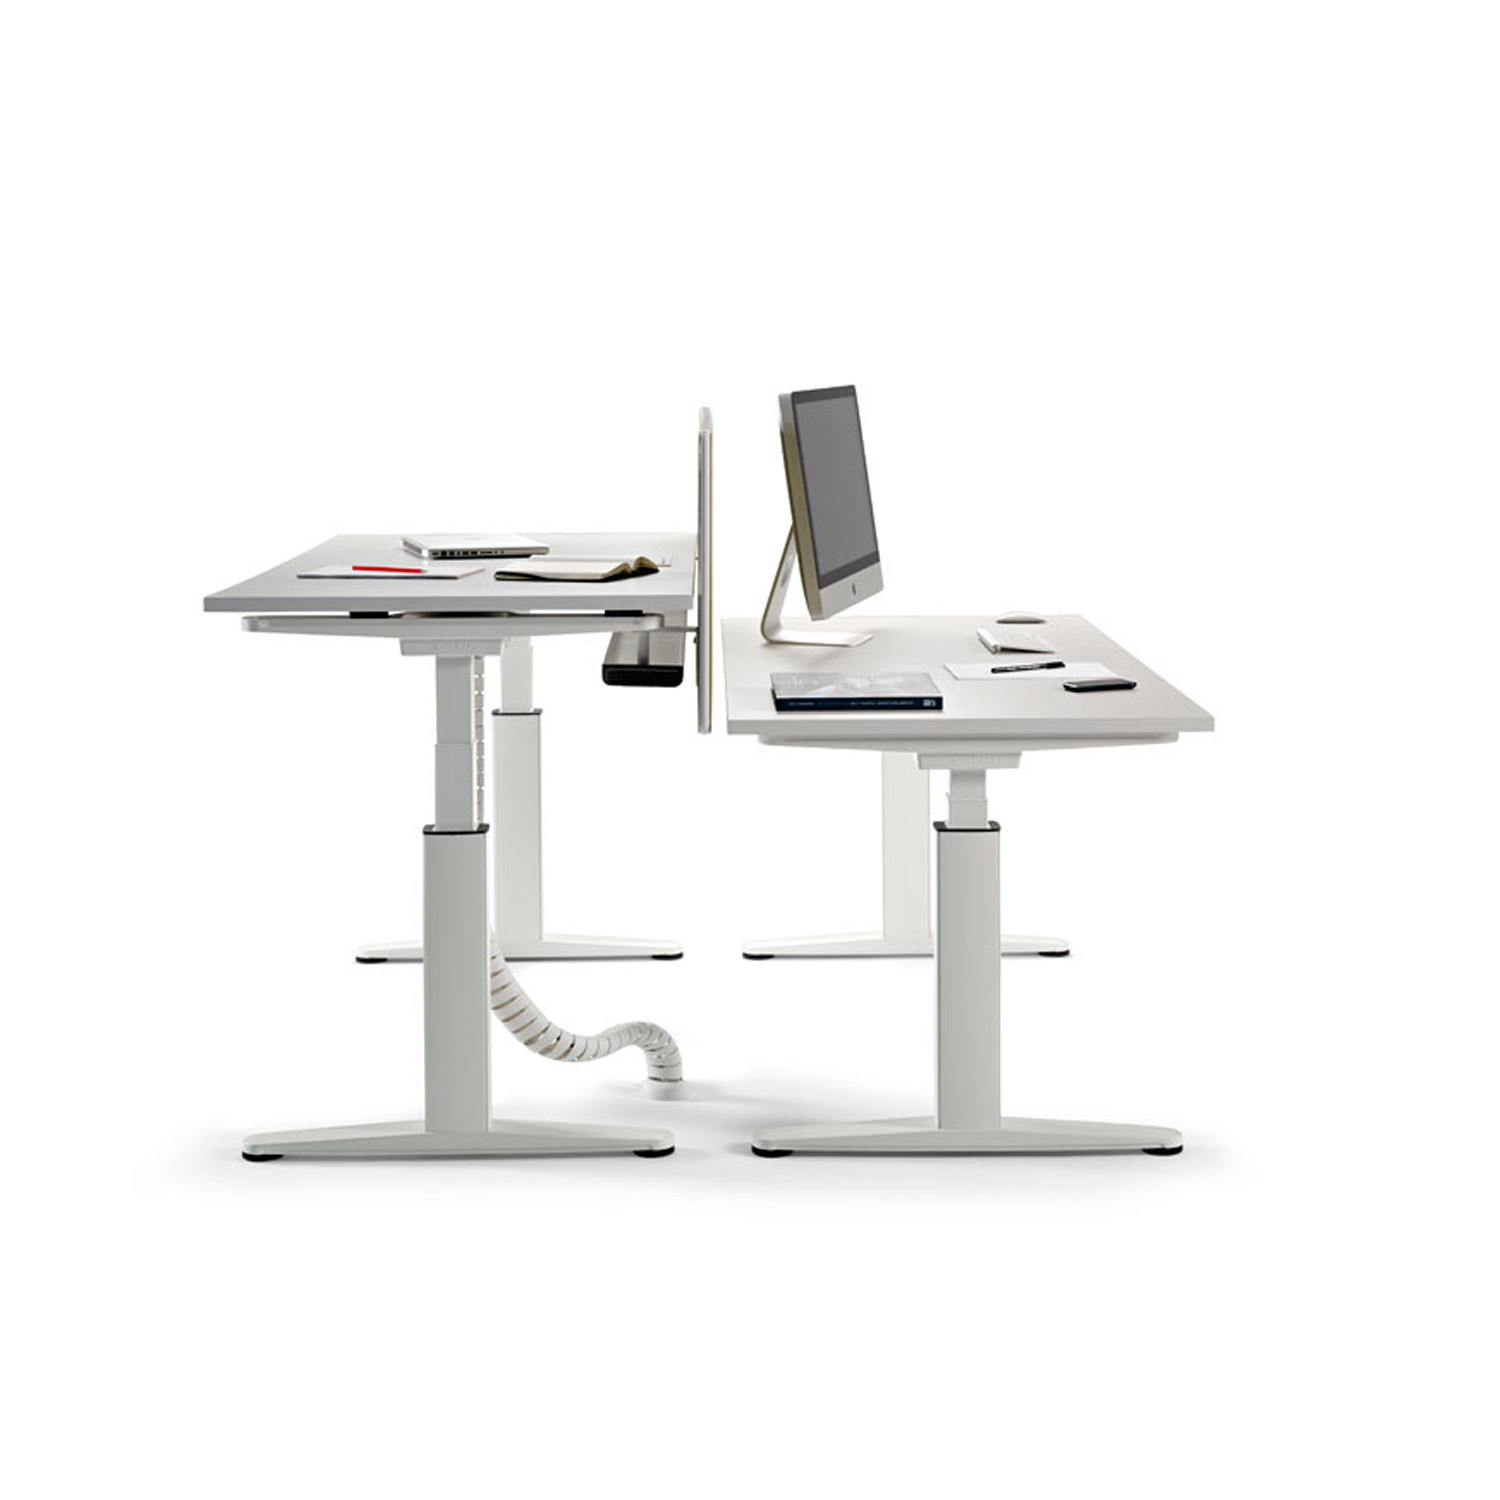 pin new height office search adjustable google stand monitor desk